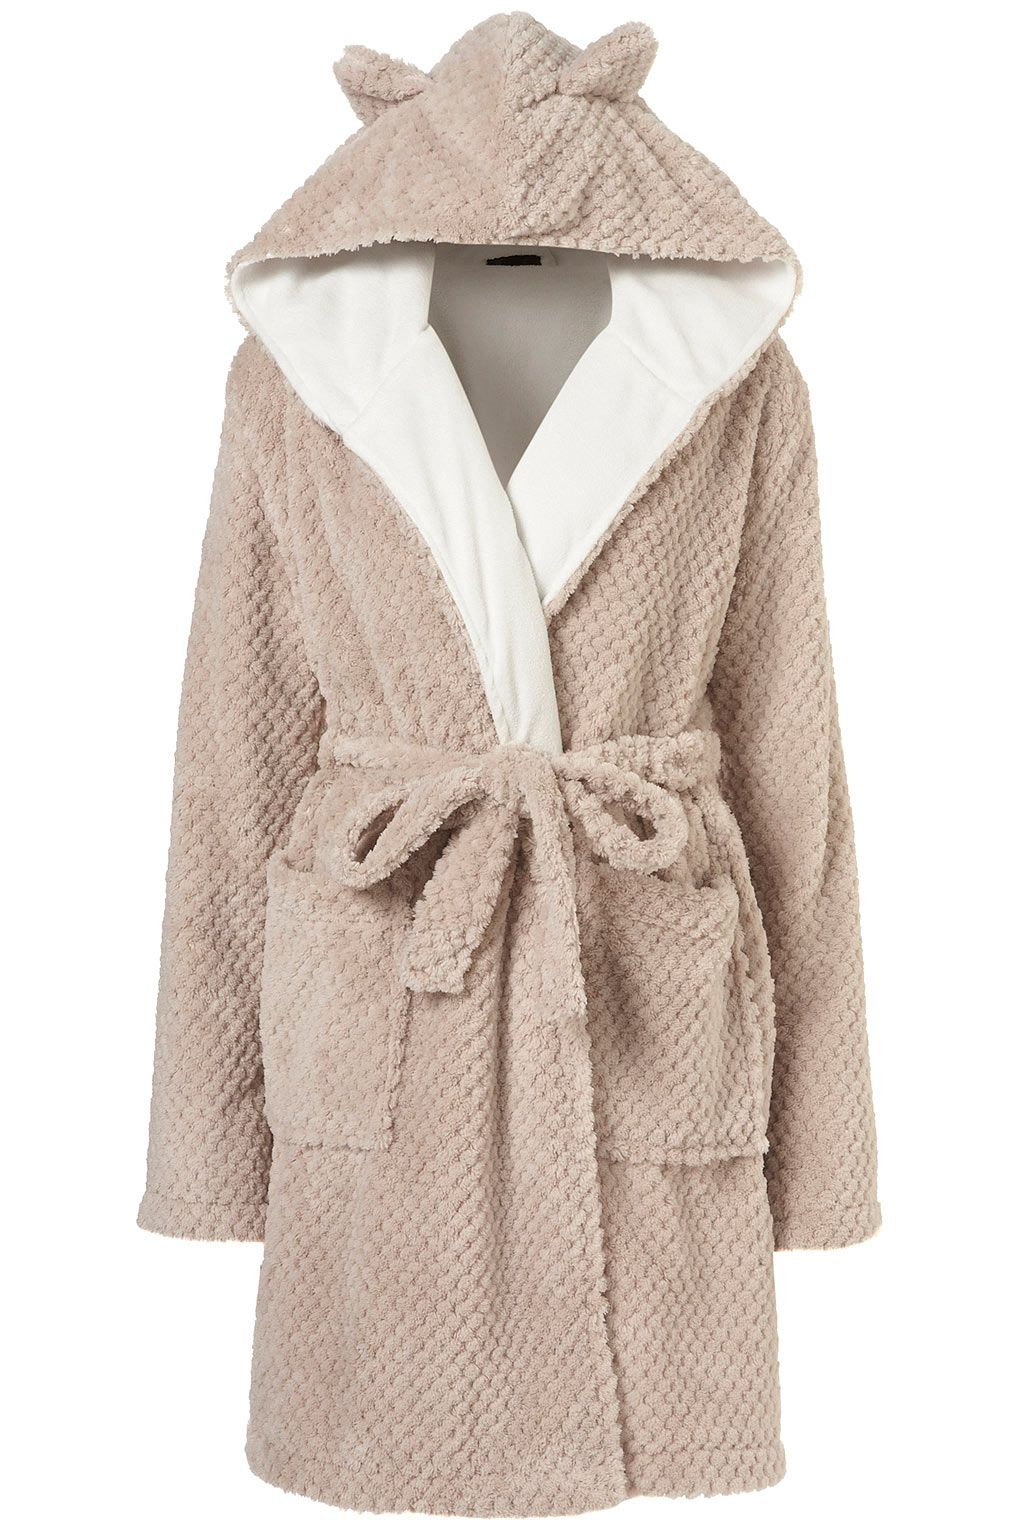 I could totally pull off a bathrobe with teddy bear ears   thisiswhat30lookslike fc9d3f193